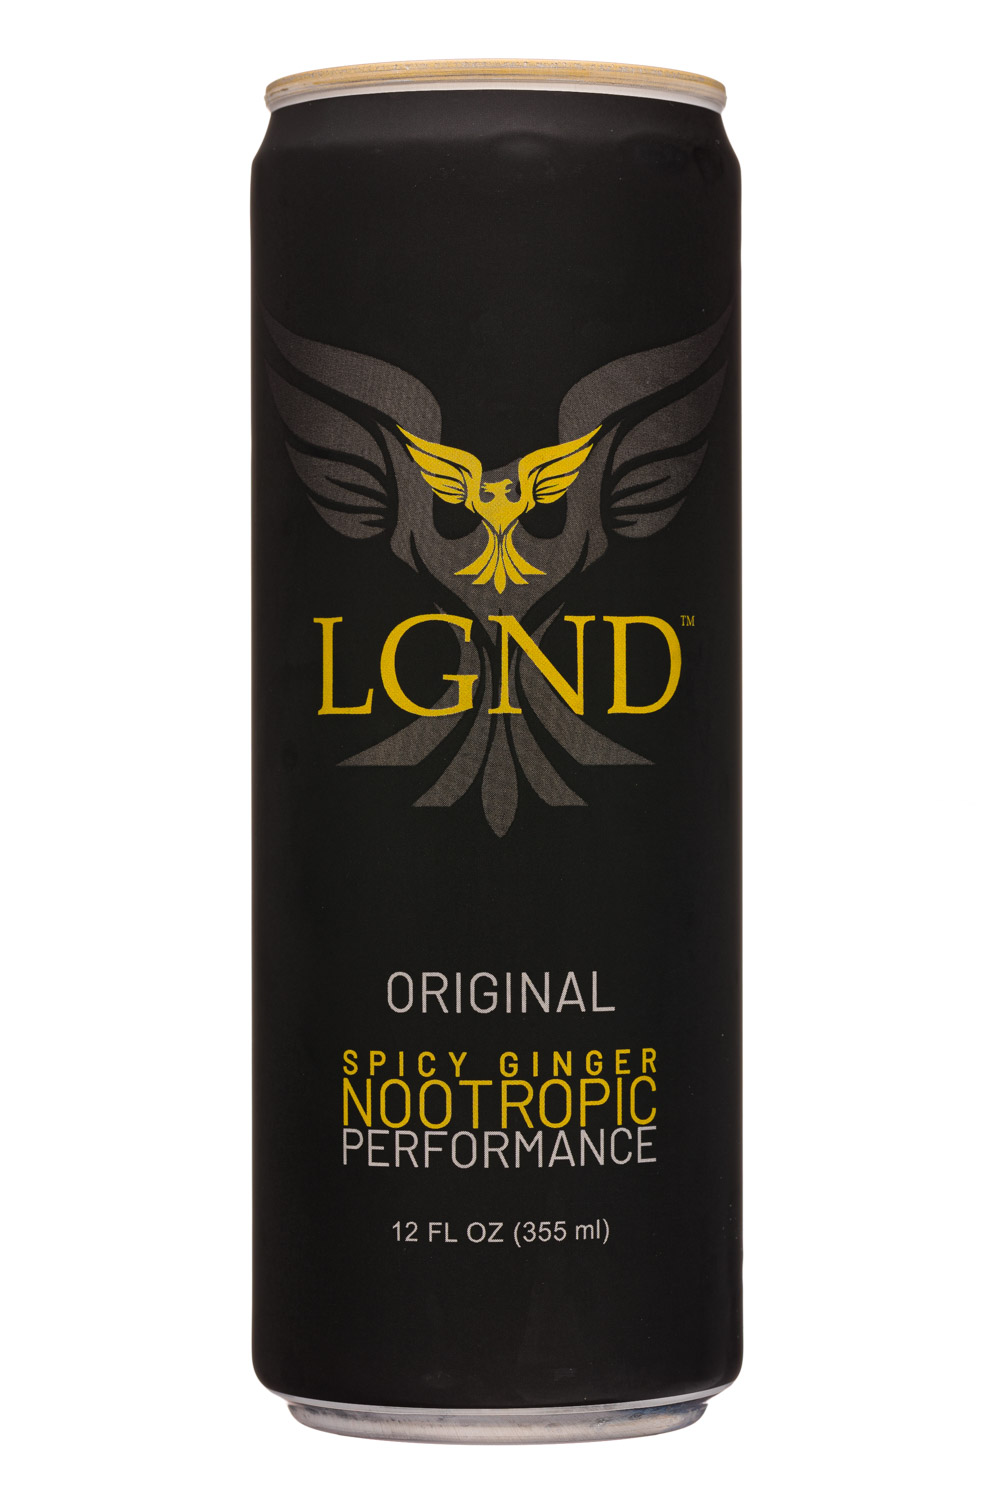 Original Spicy Ginger Nootropic Performance